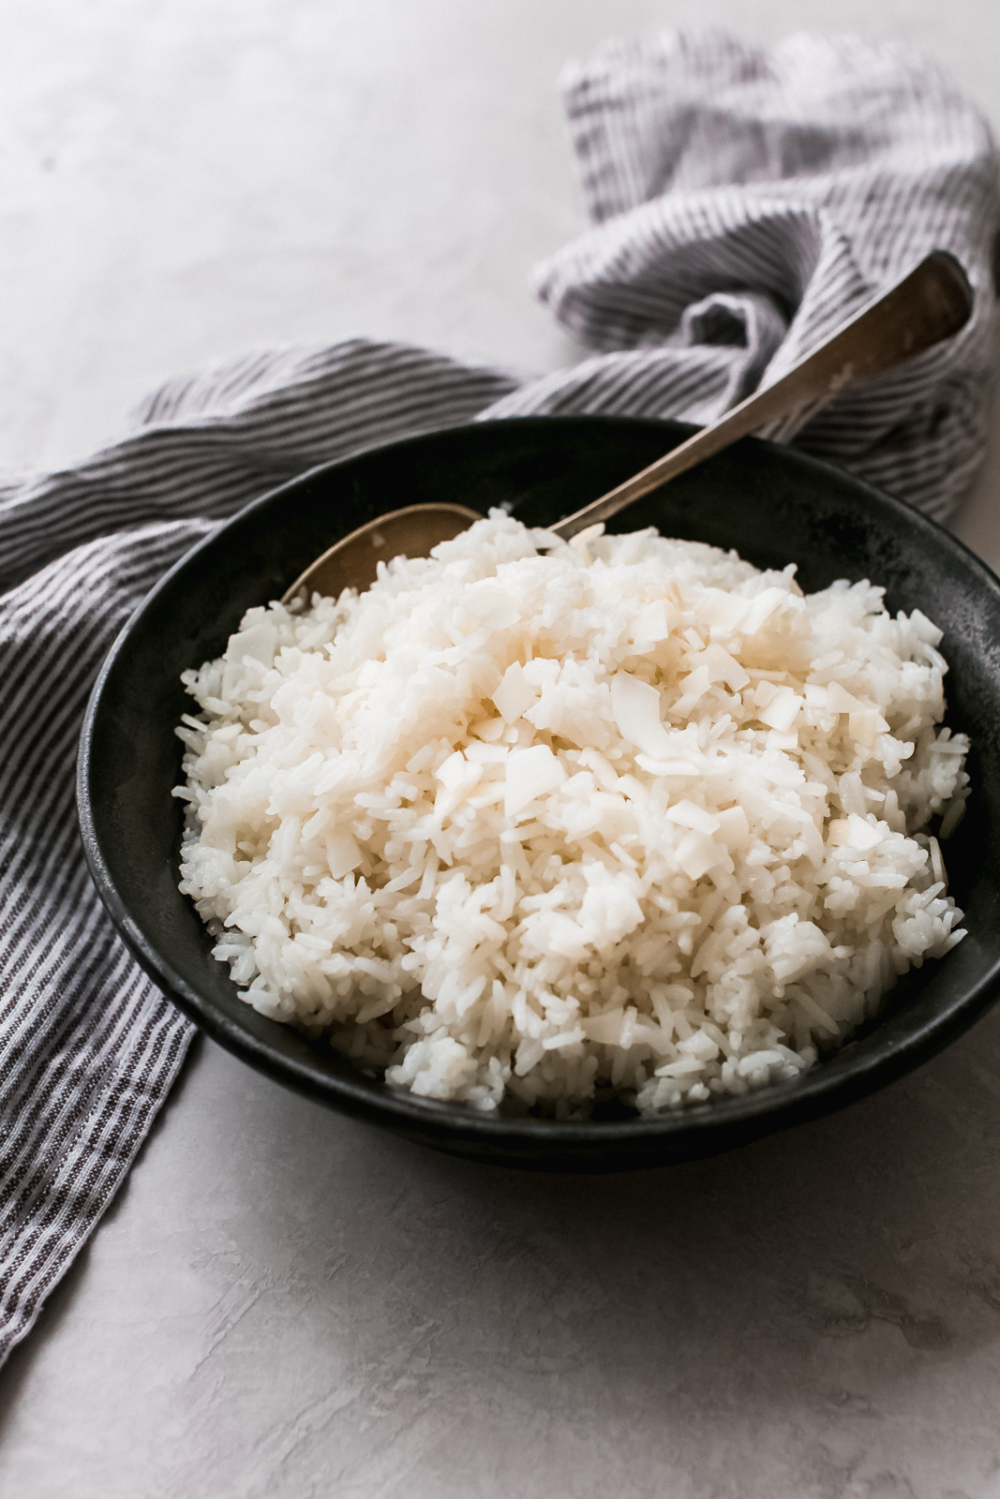 5 Ingredient Instant Pot Coconut Rice - Learn how to make coconut rice in the instant pot. A simple recipe that takes about 5 minutes to toss together and goes with so many different types of cuisines! #instantpot #instantpotrecipes #instantpotcoconutrice #coconutrice #jasminerice #jasminecoconutrice   Littlespicejar.com